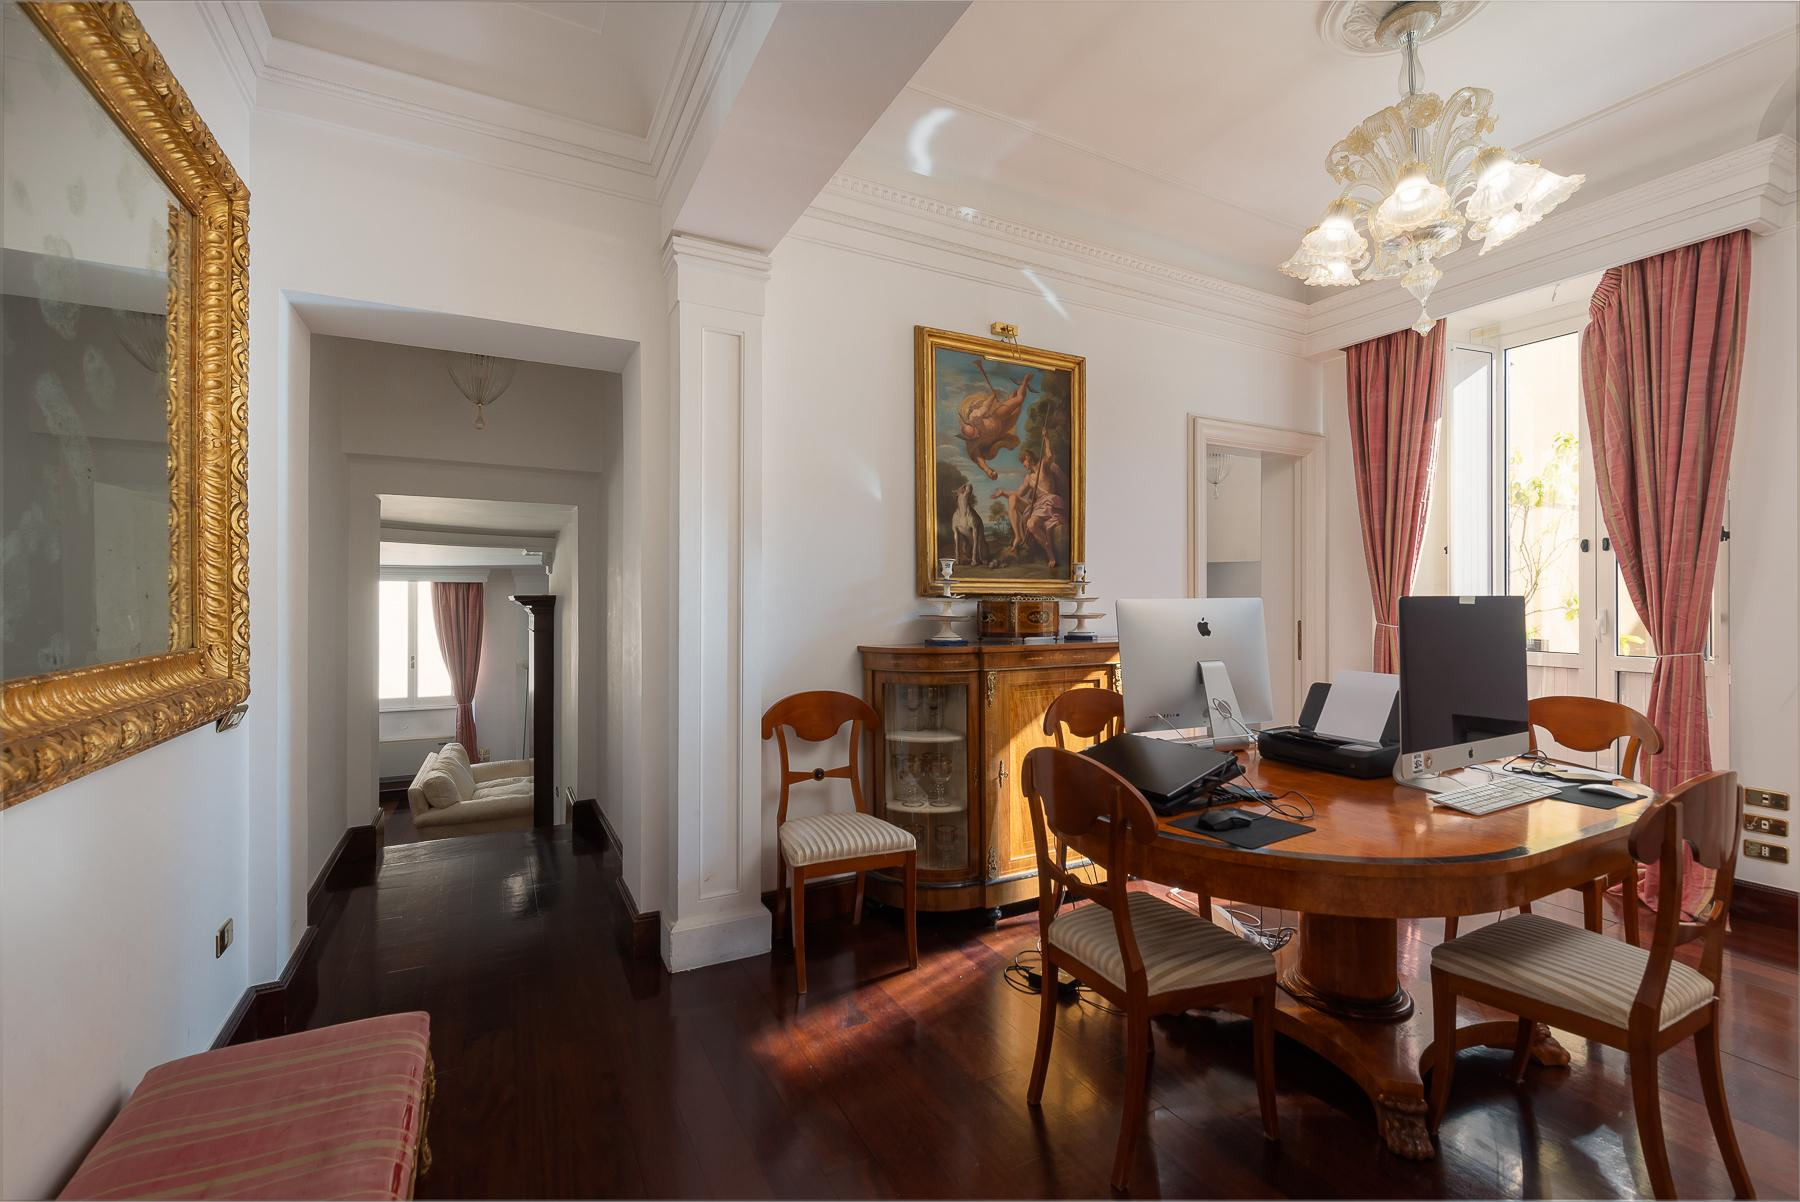 Marvelous pied a terre in an historic palazzo - 6